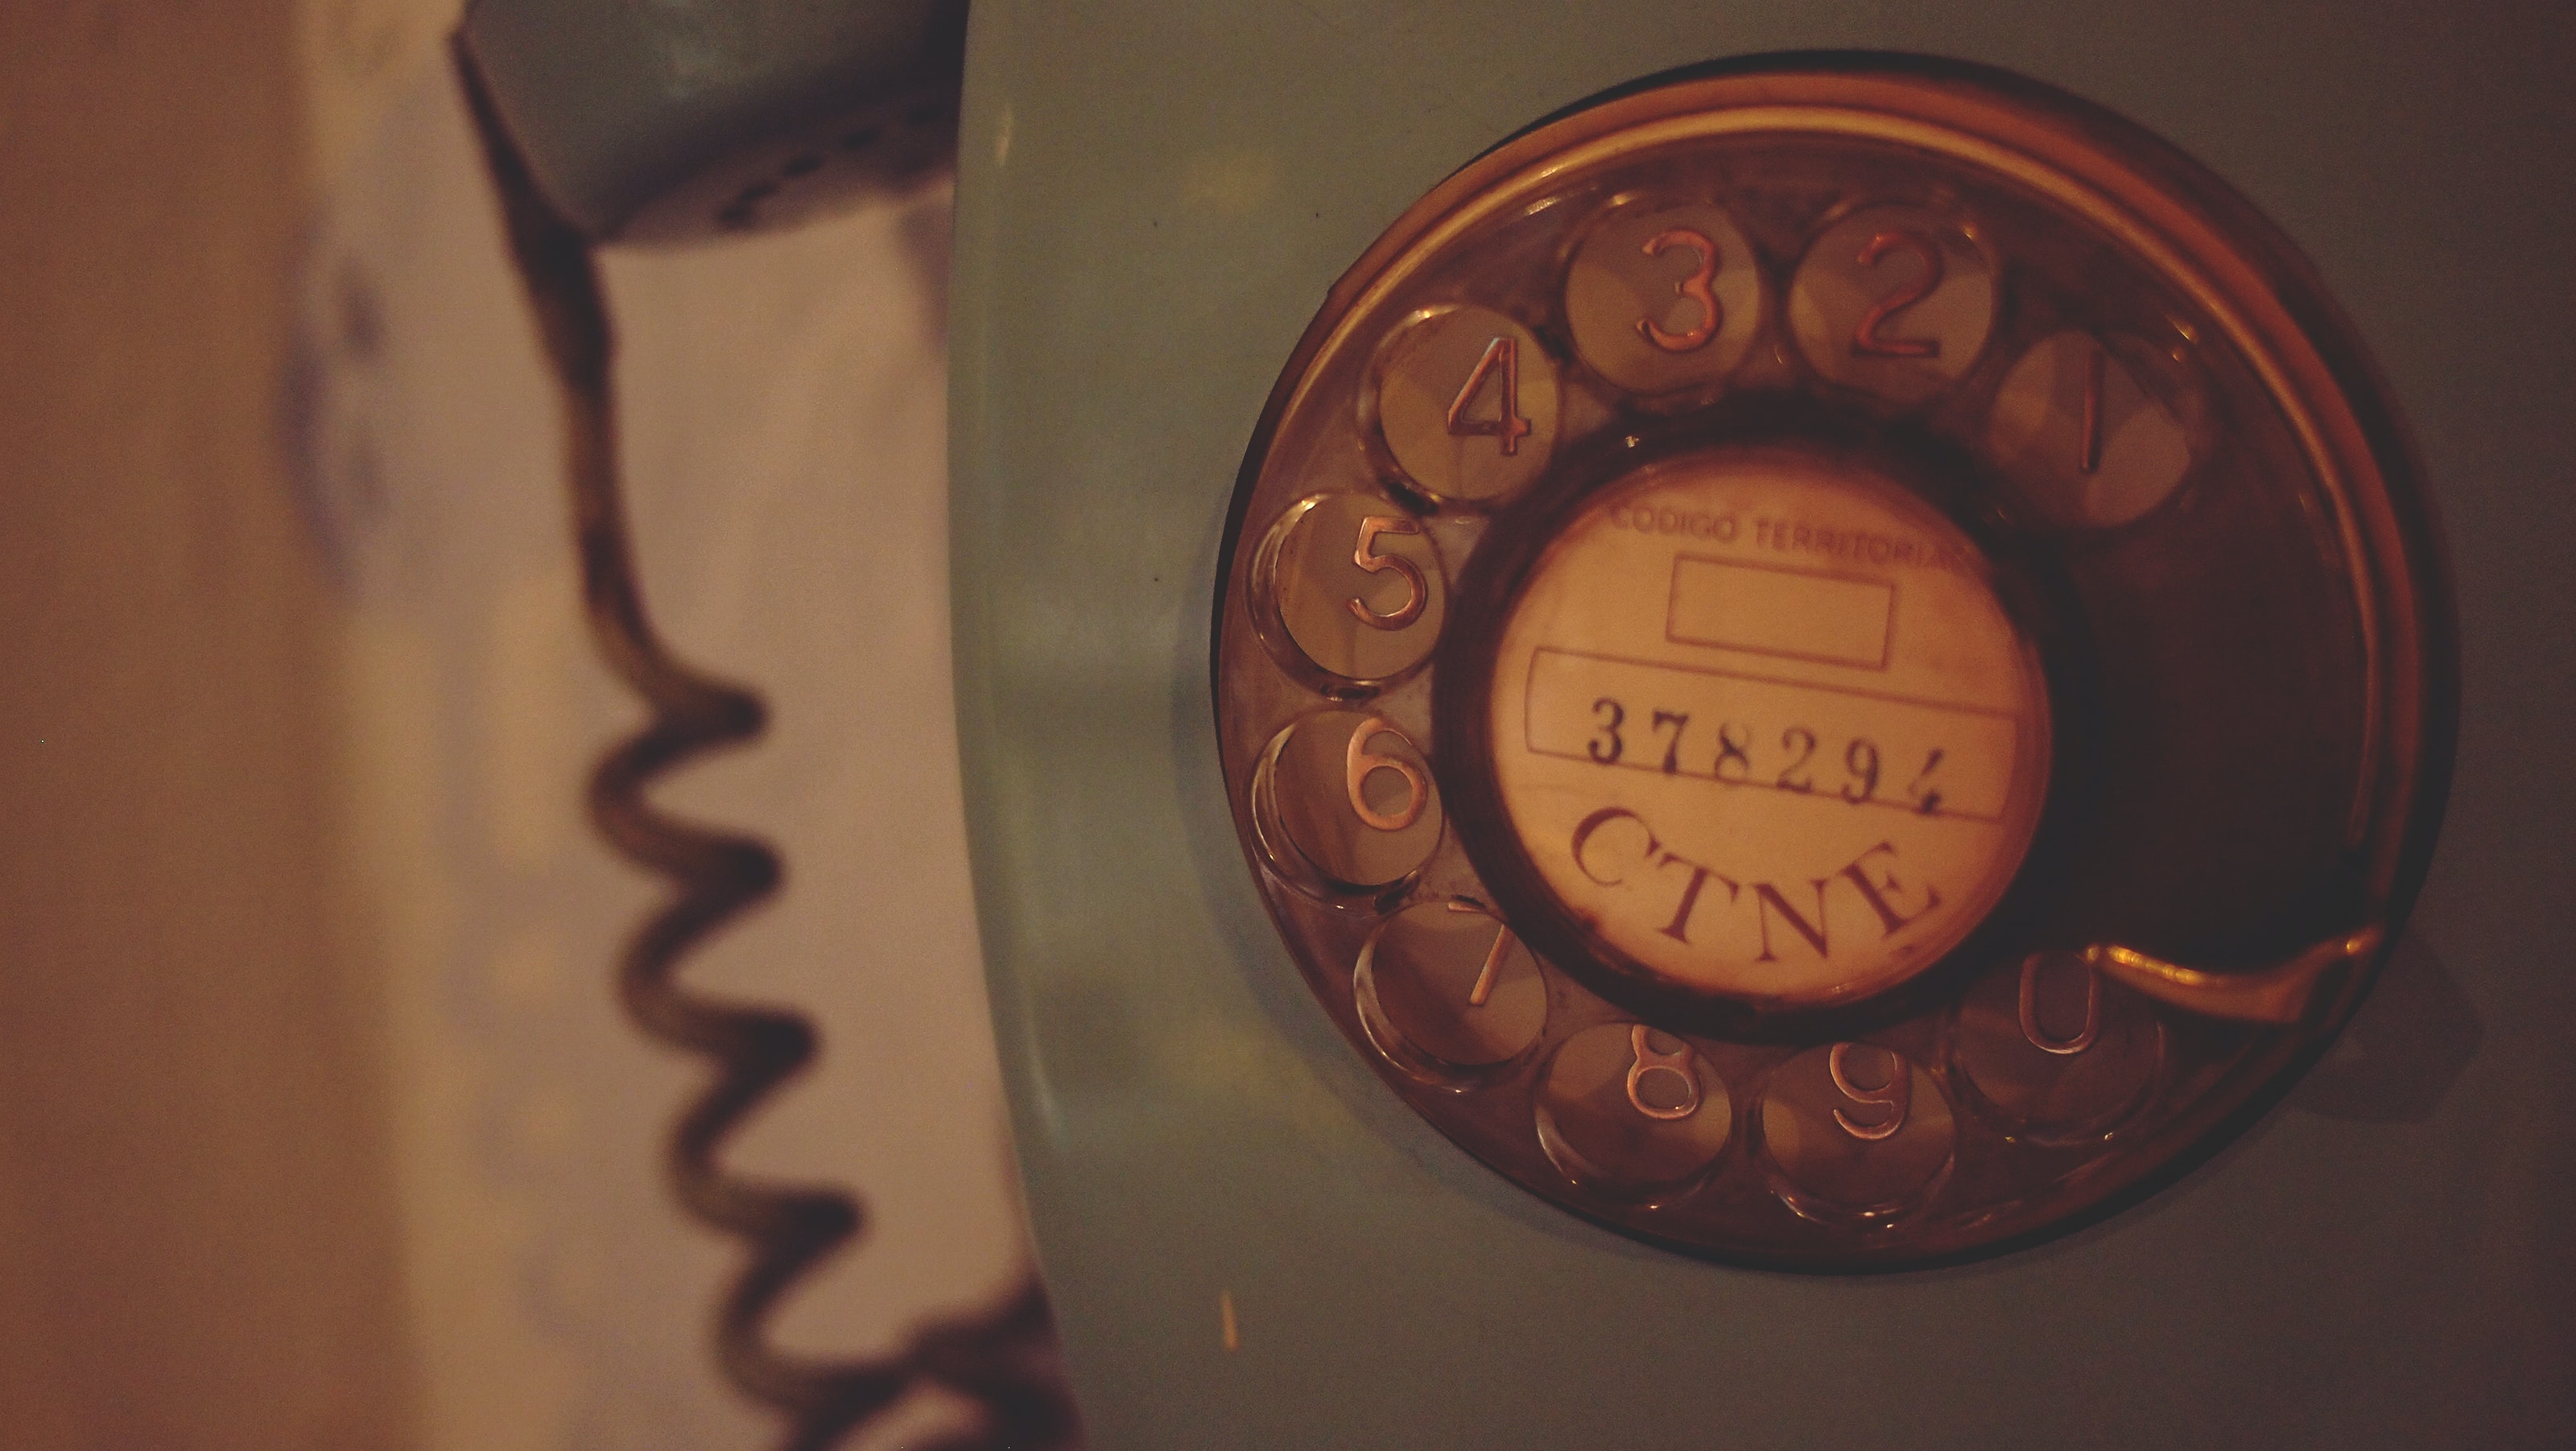 A vintage dial and spin telephone